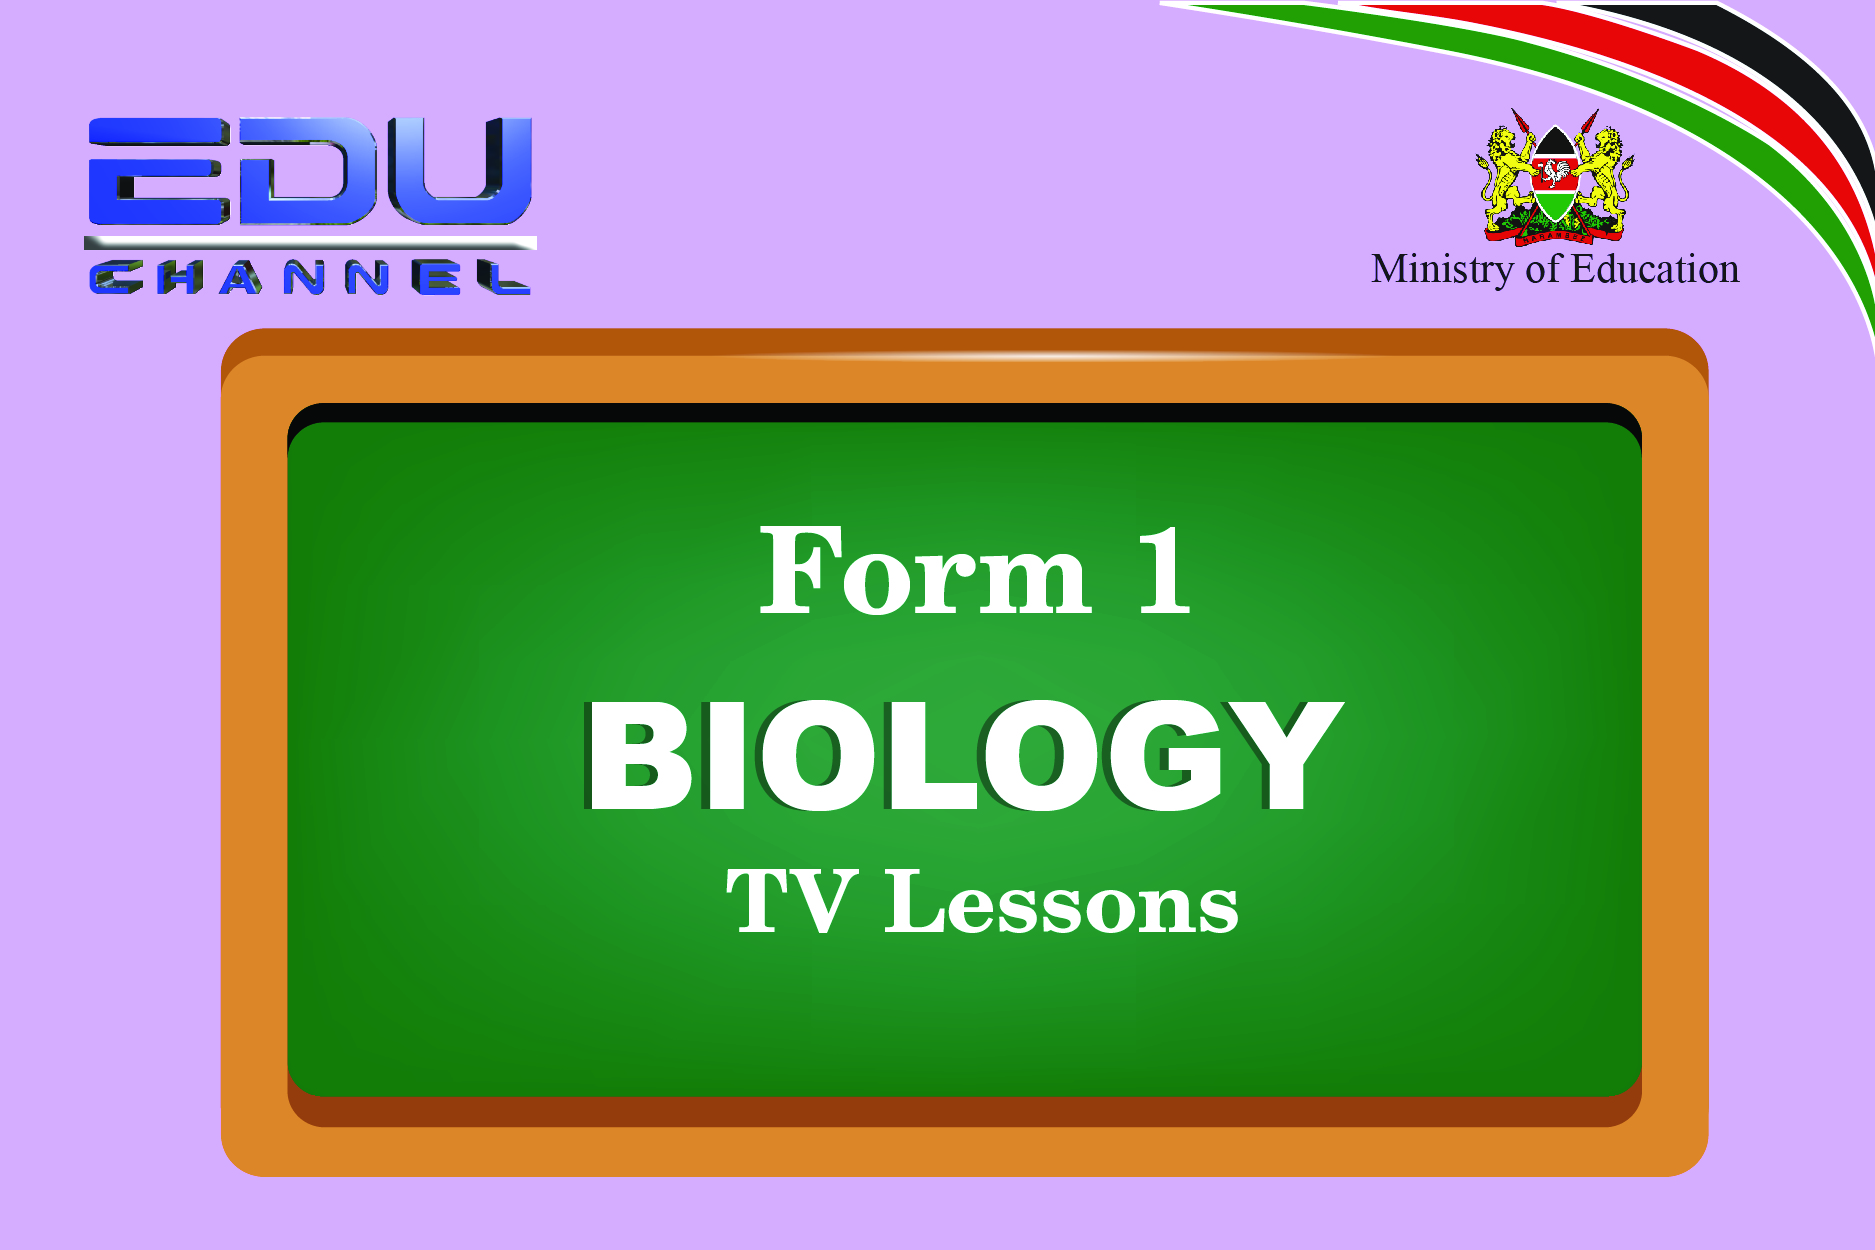 Form 1 Biology Lesson 1: Characteristics of Living Things